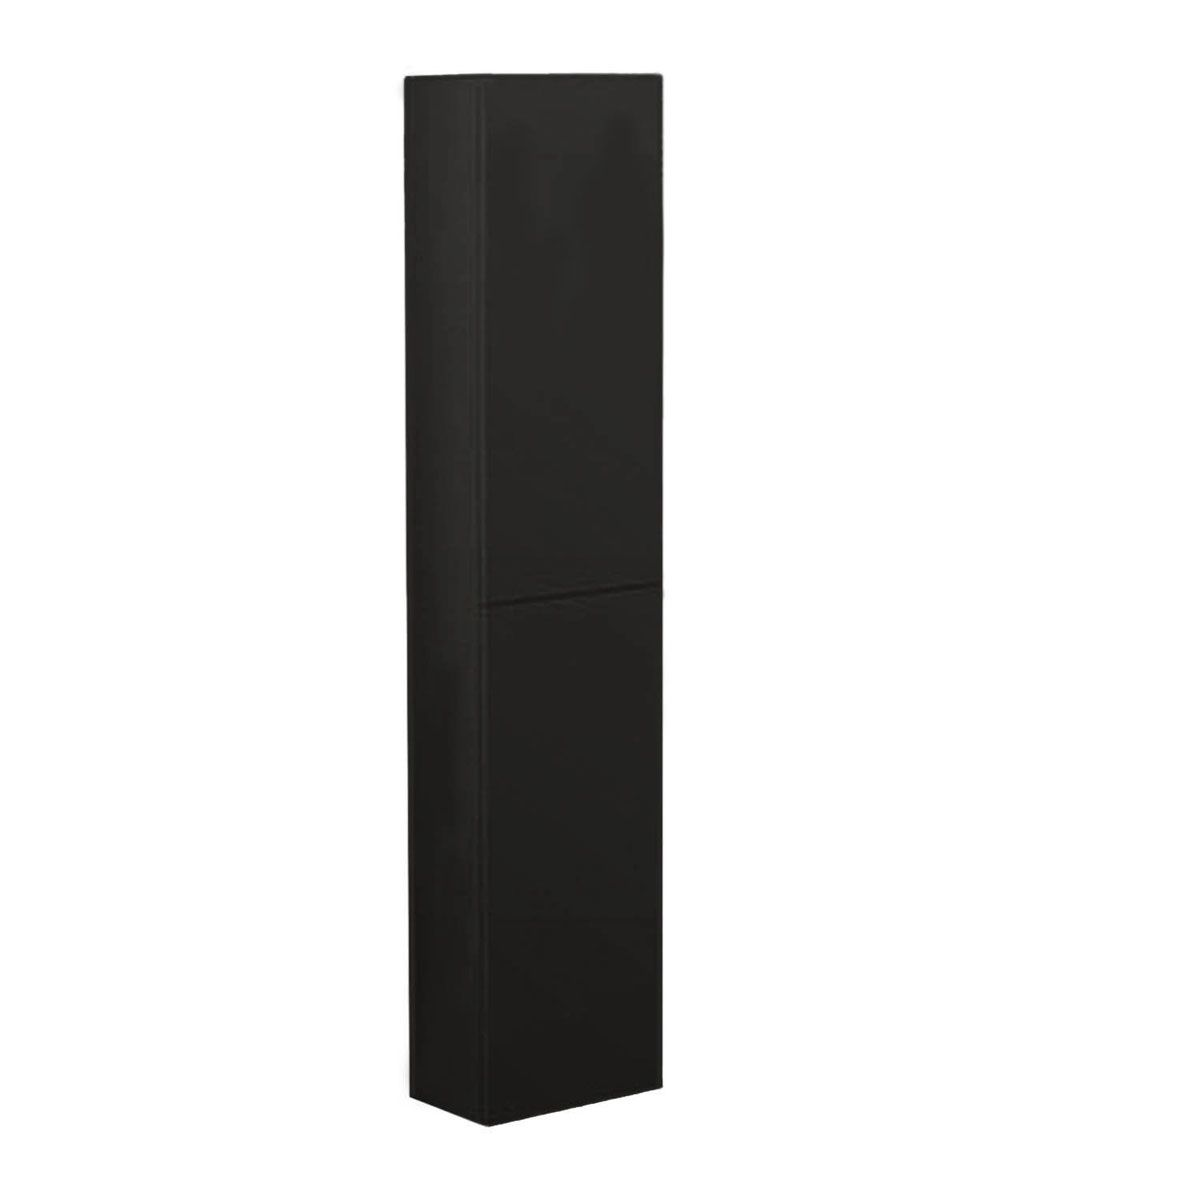 Frontline Vida Anthracite Wall Mounted Tall Unit